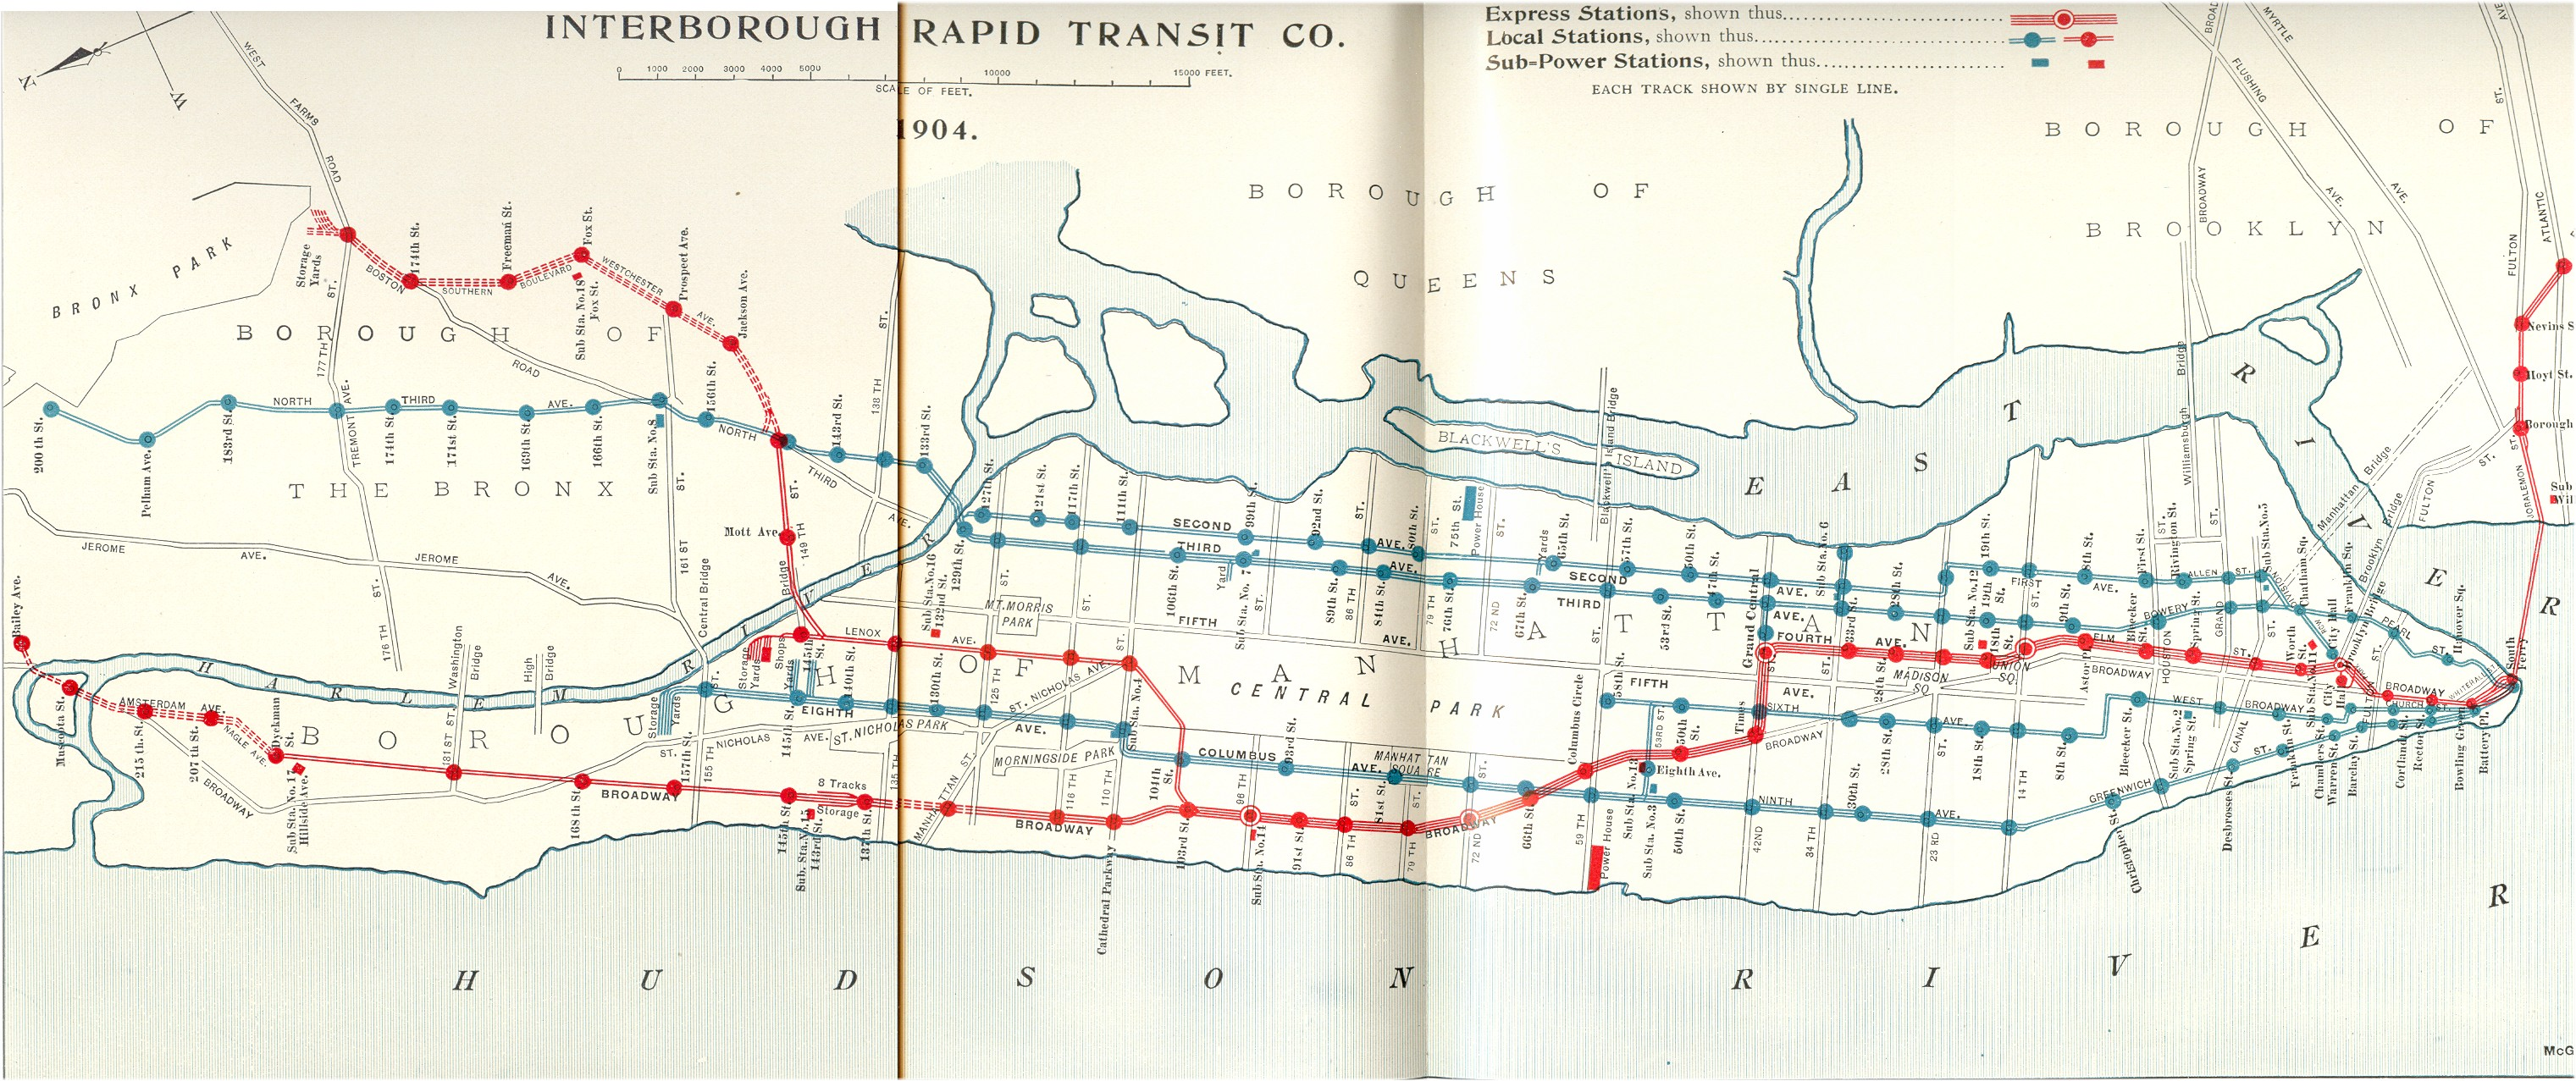 Second Ave Subway Map.Vintage Map Shows New York City S Irt Subway Lines In 1904 Viewing Nyc